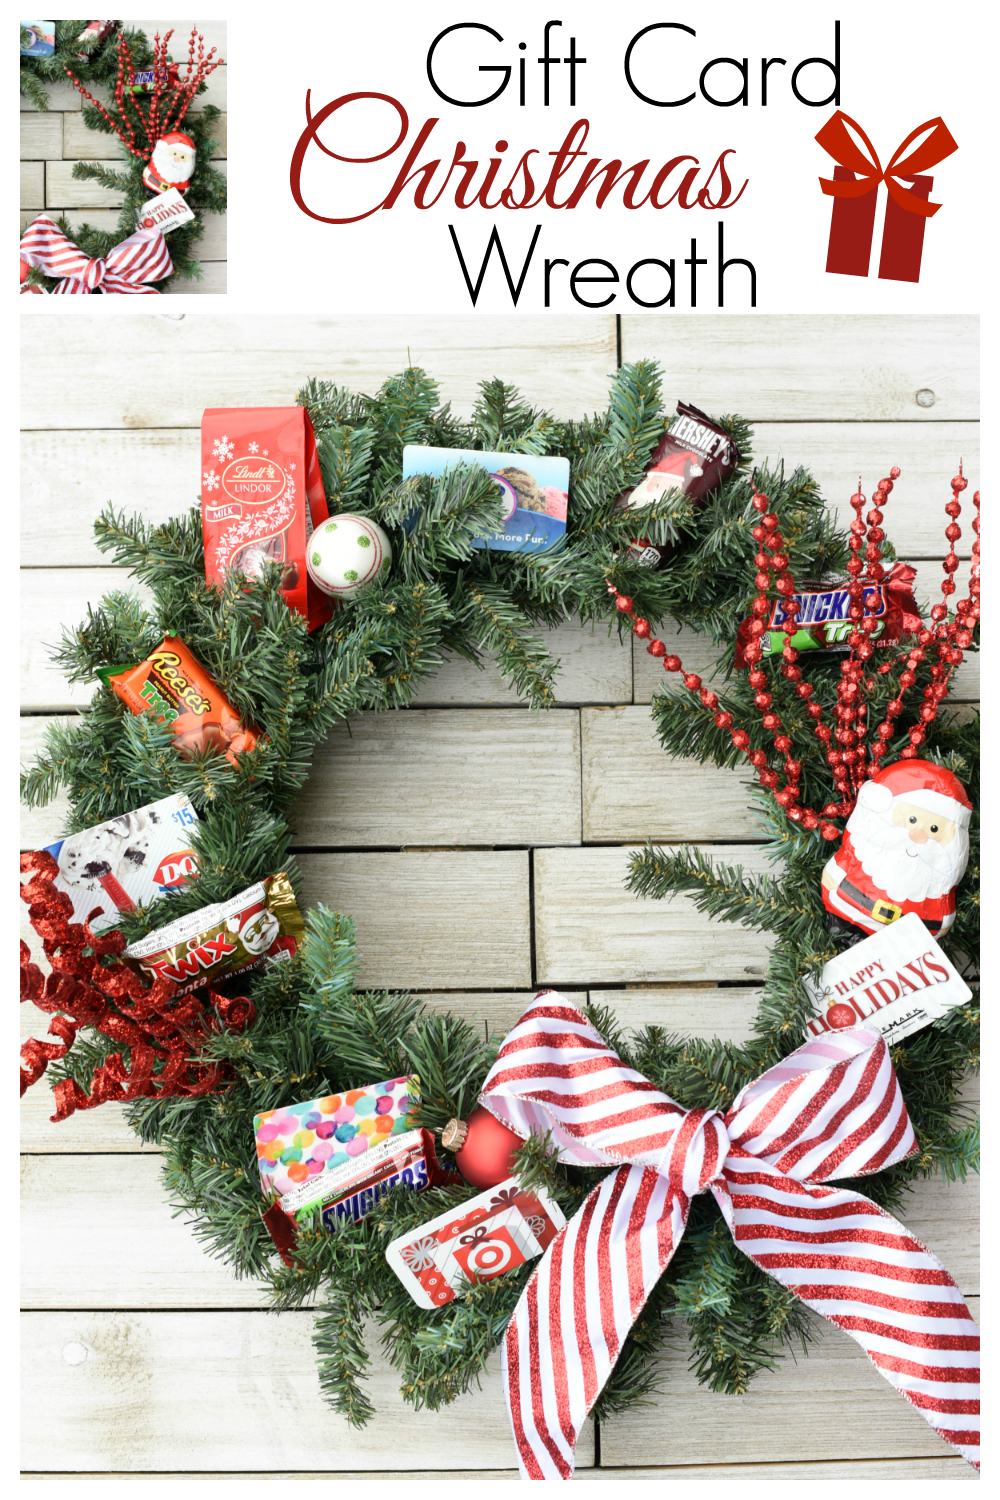 This fun and simple Christmas Gift Idea is perfect for anyone on your list this year. It's such a great way to to give gift cards. #gifts #christmasgifts #creativegifts #giftcards